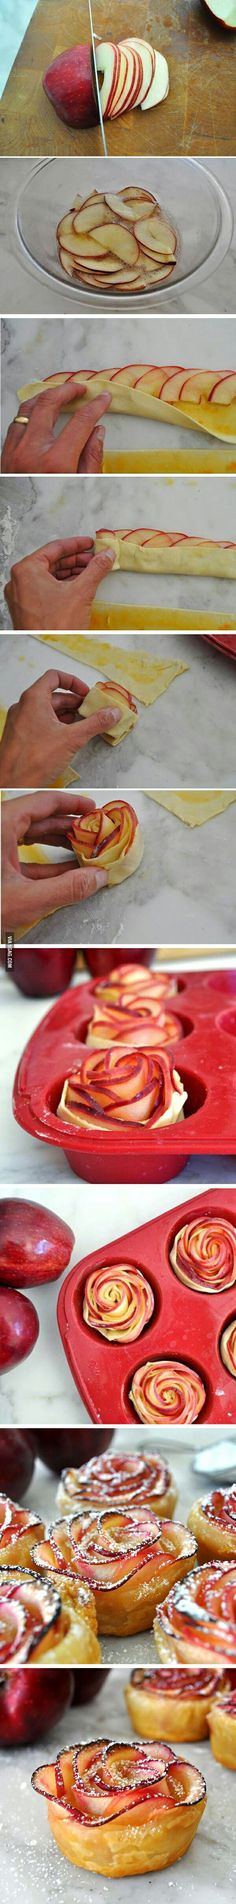 A new way of eating apple pie